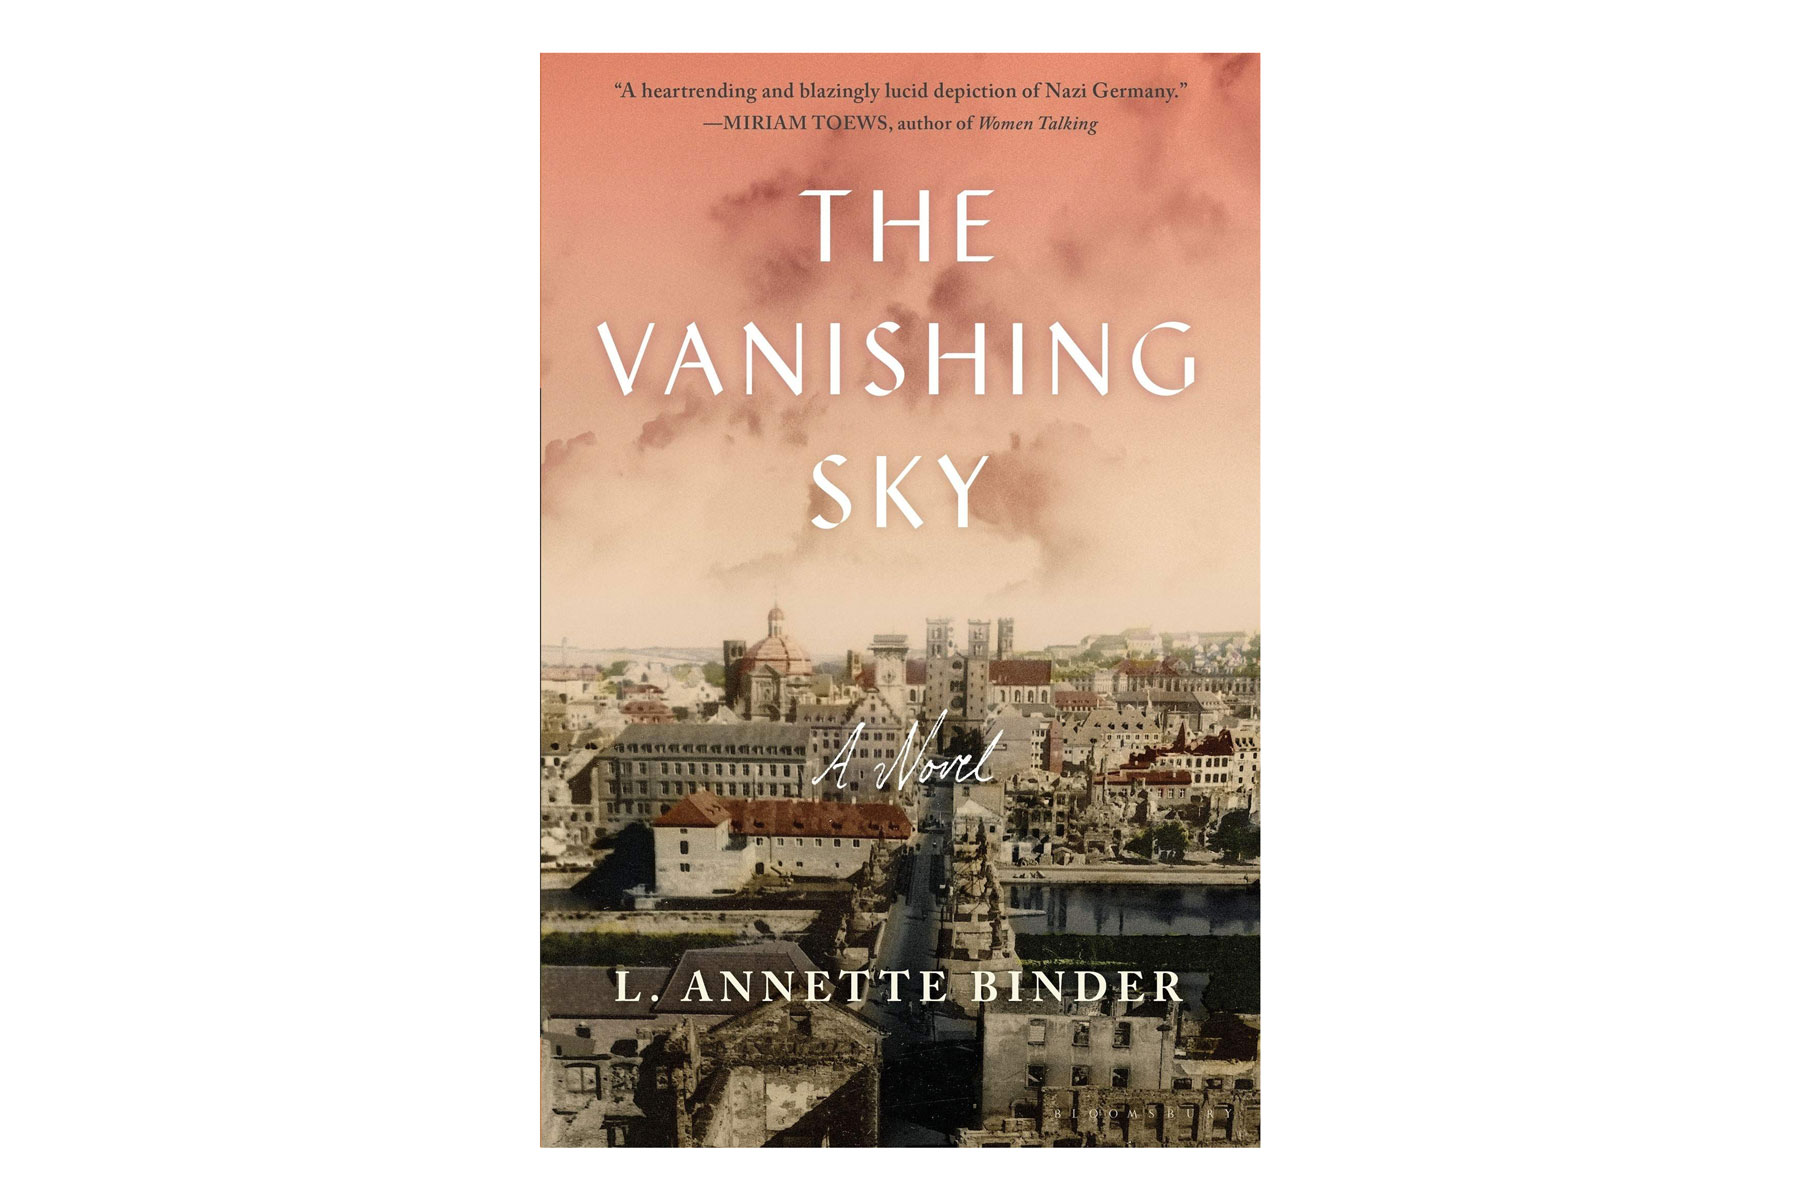 The Vanishing Sky book